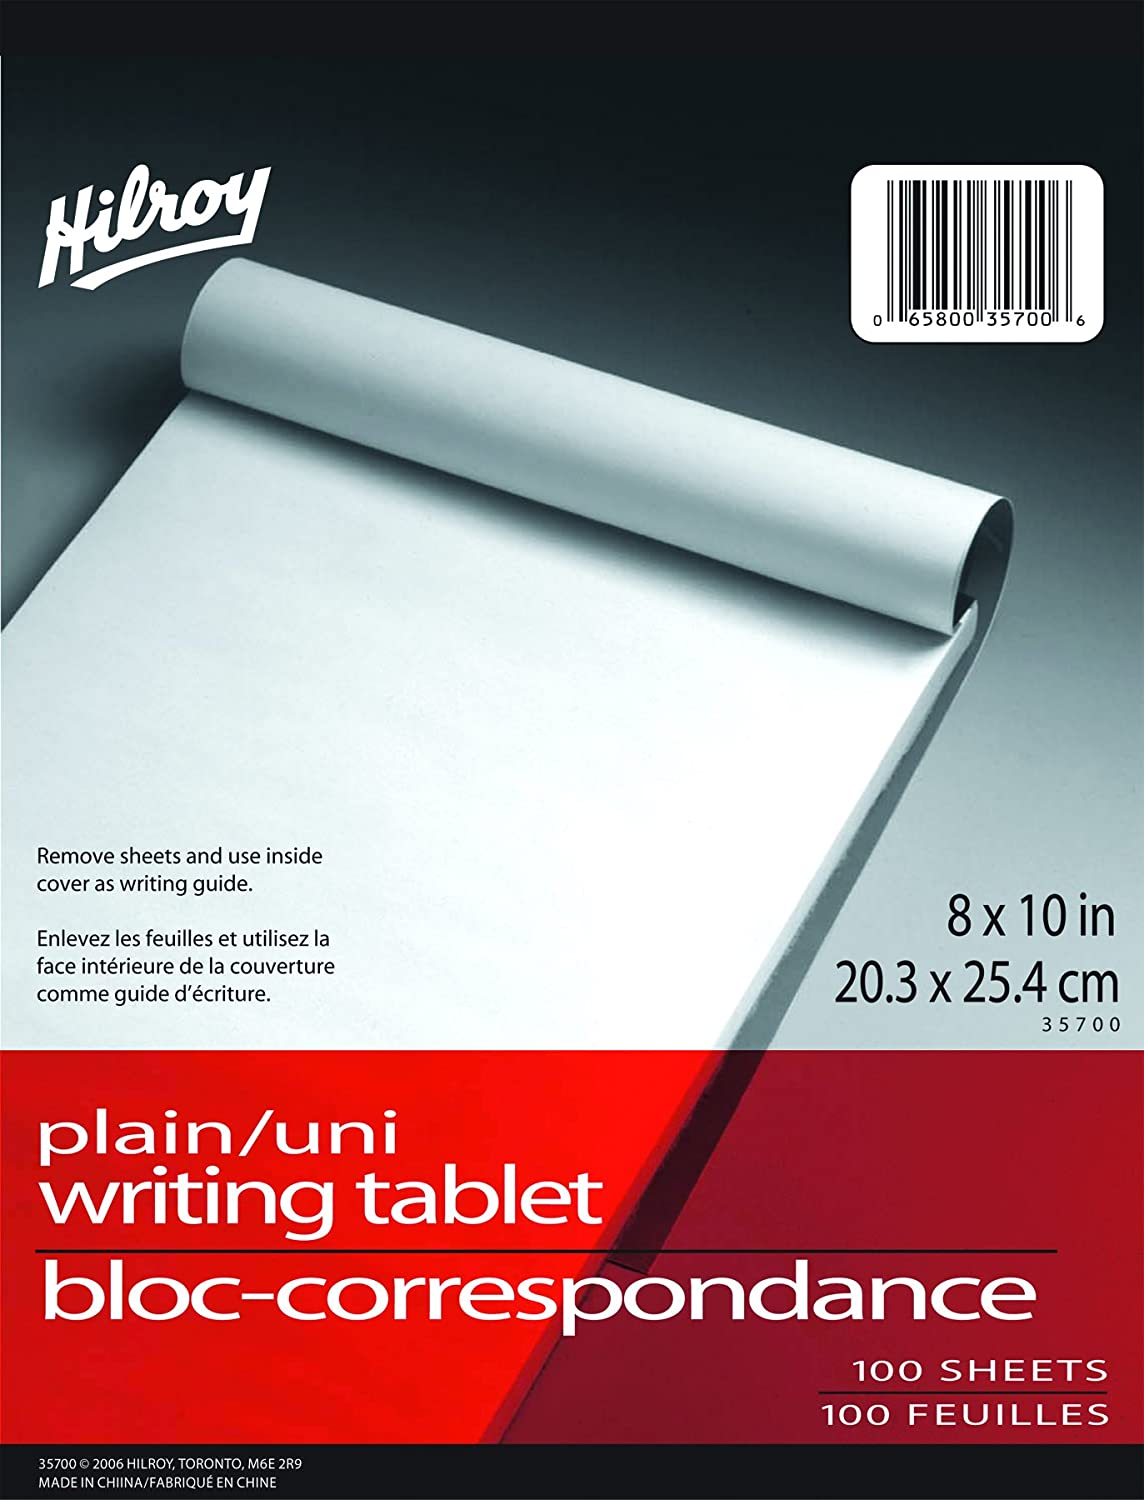 Hilroy 35700 Social Stationary Writing Tablet, 8x10-Inch, 50 Sheets, Plain White Paper